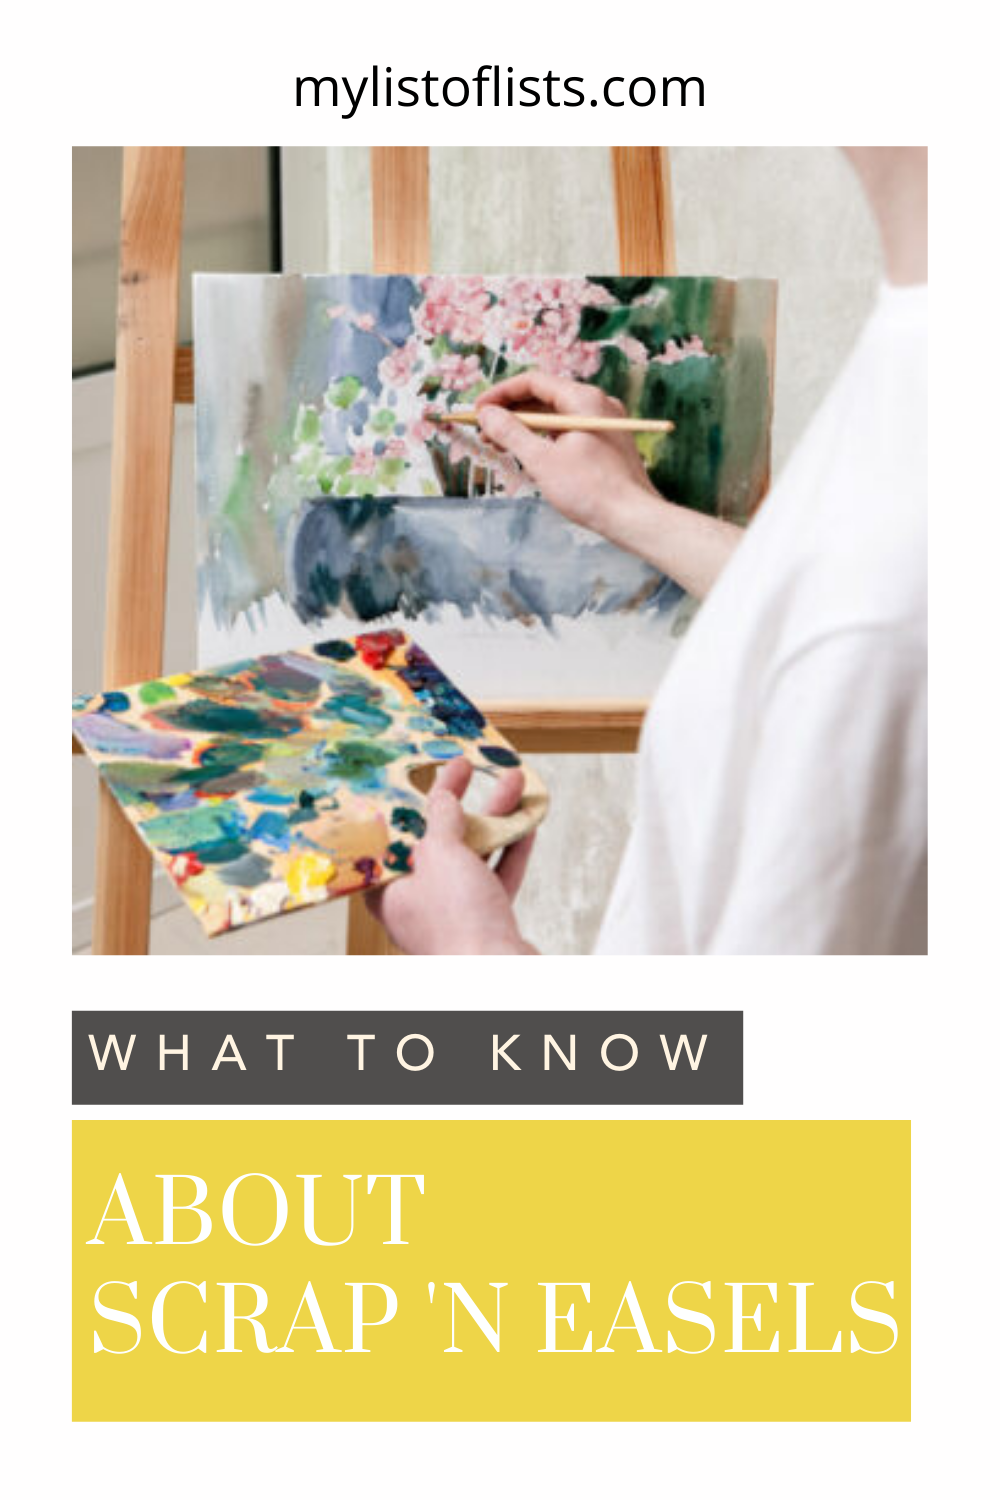 Mylistoflists.com has all you need to know about a whole range of topics! If you've been getting artsy, you need to know about Scrap 'N Easels! Find out what they're all about and why you should have one in your art room!